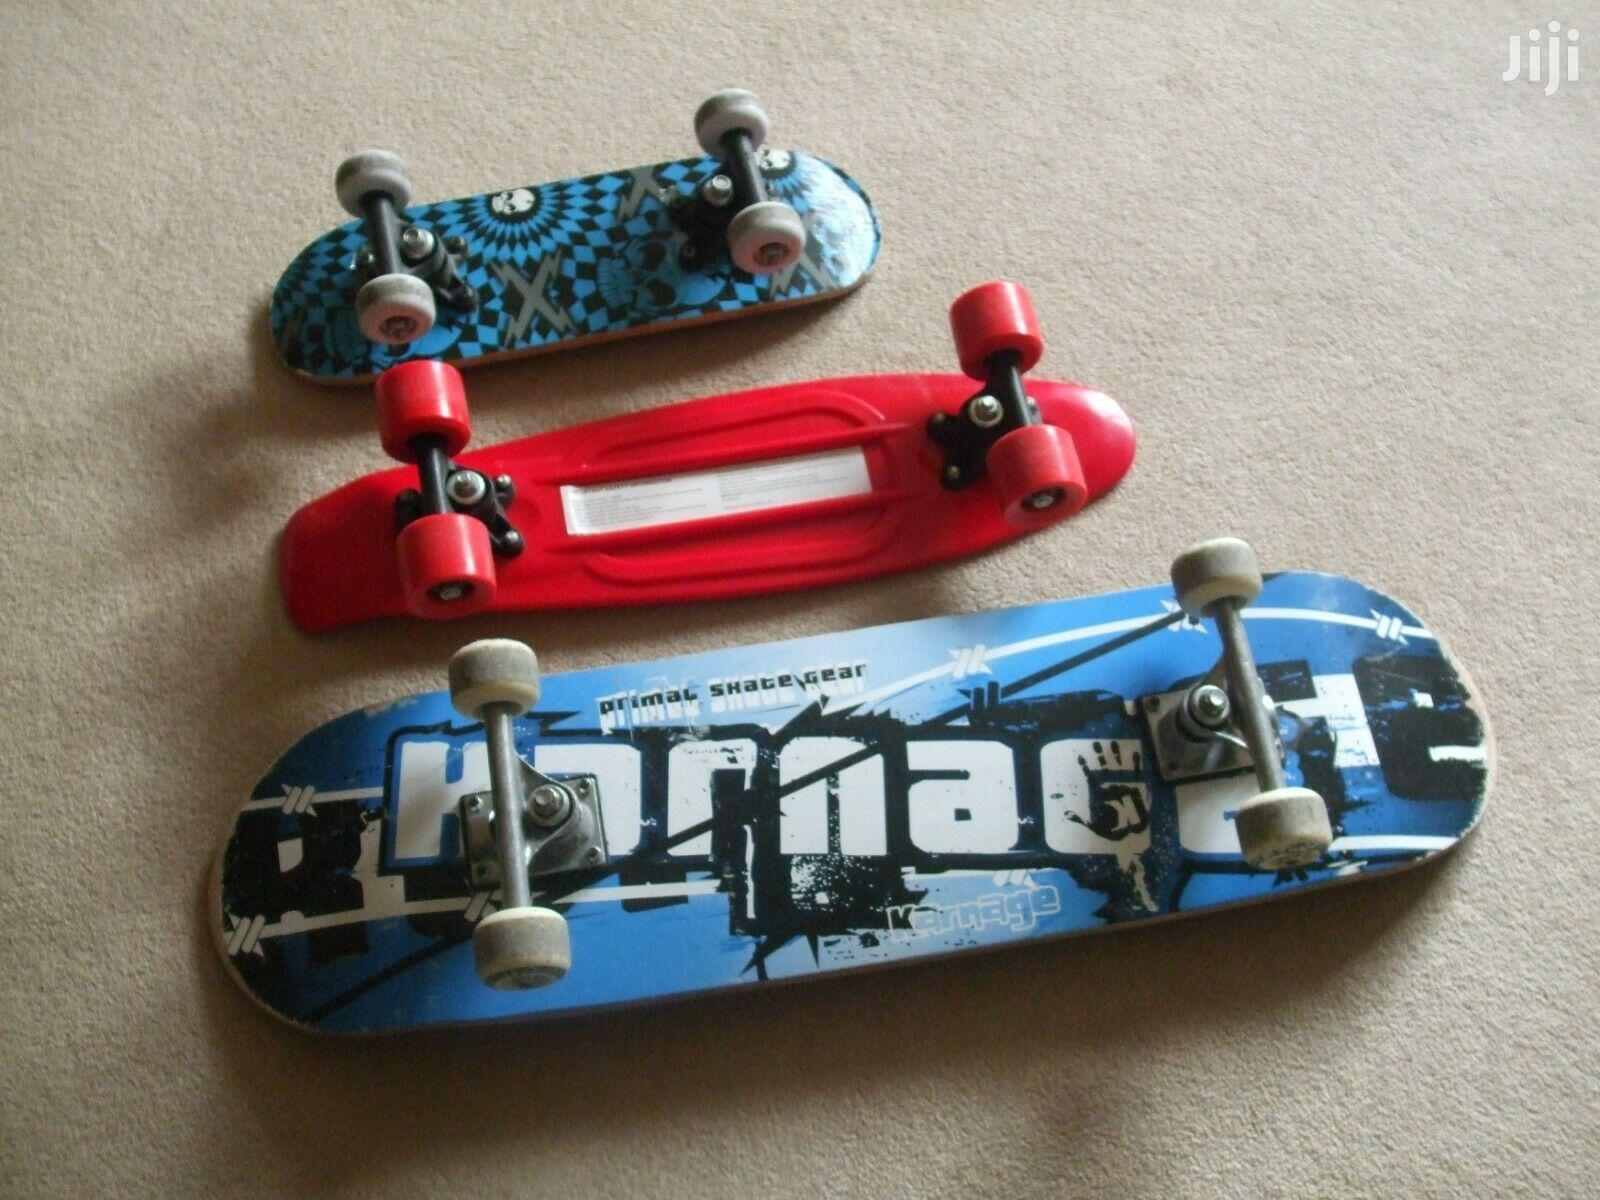 Skateboard | Sports Equipment for sale in Achimota, Greater Accra, Ghana